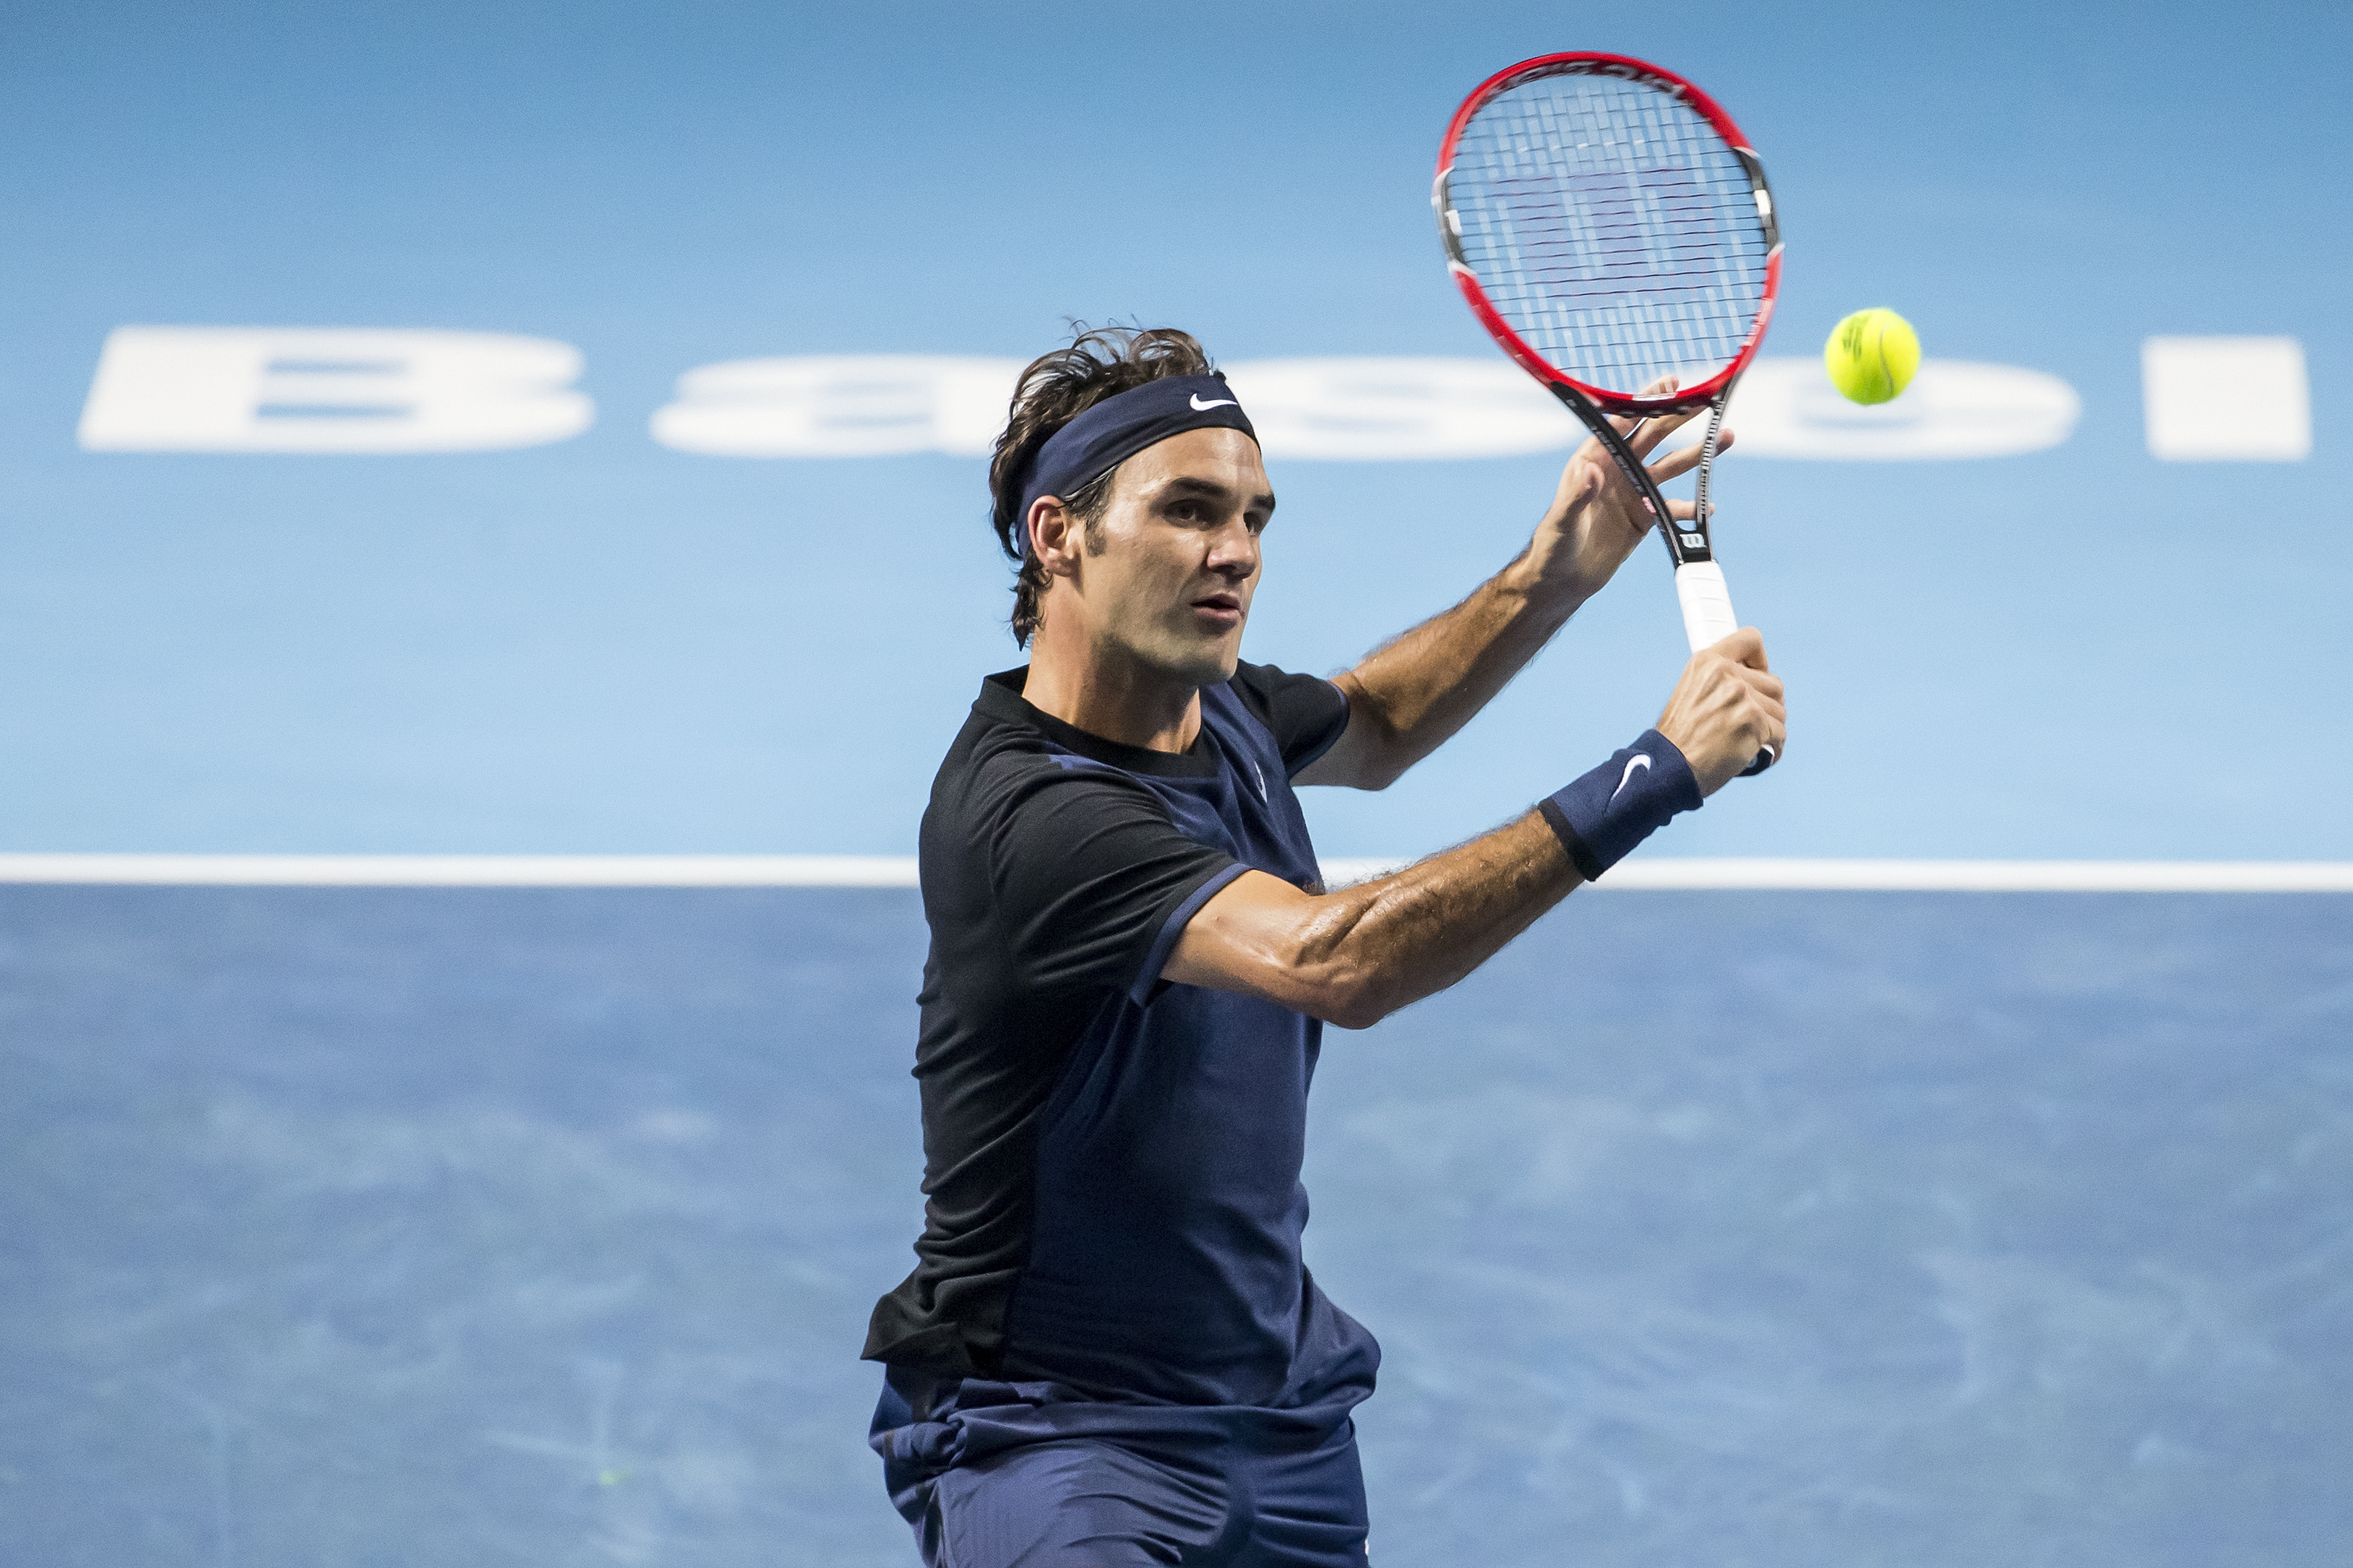 Switzerland's Roger Federer returns a ball to Belgiumu0092s David Goffin during their quarter final match of the Swiss Indoors tennis tournament at the St. Jakobshalle in Basel, Switzerland, Friday, October 30, 2015. Photo: Reuters